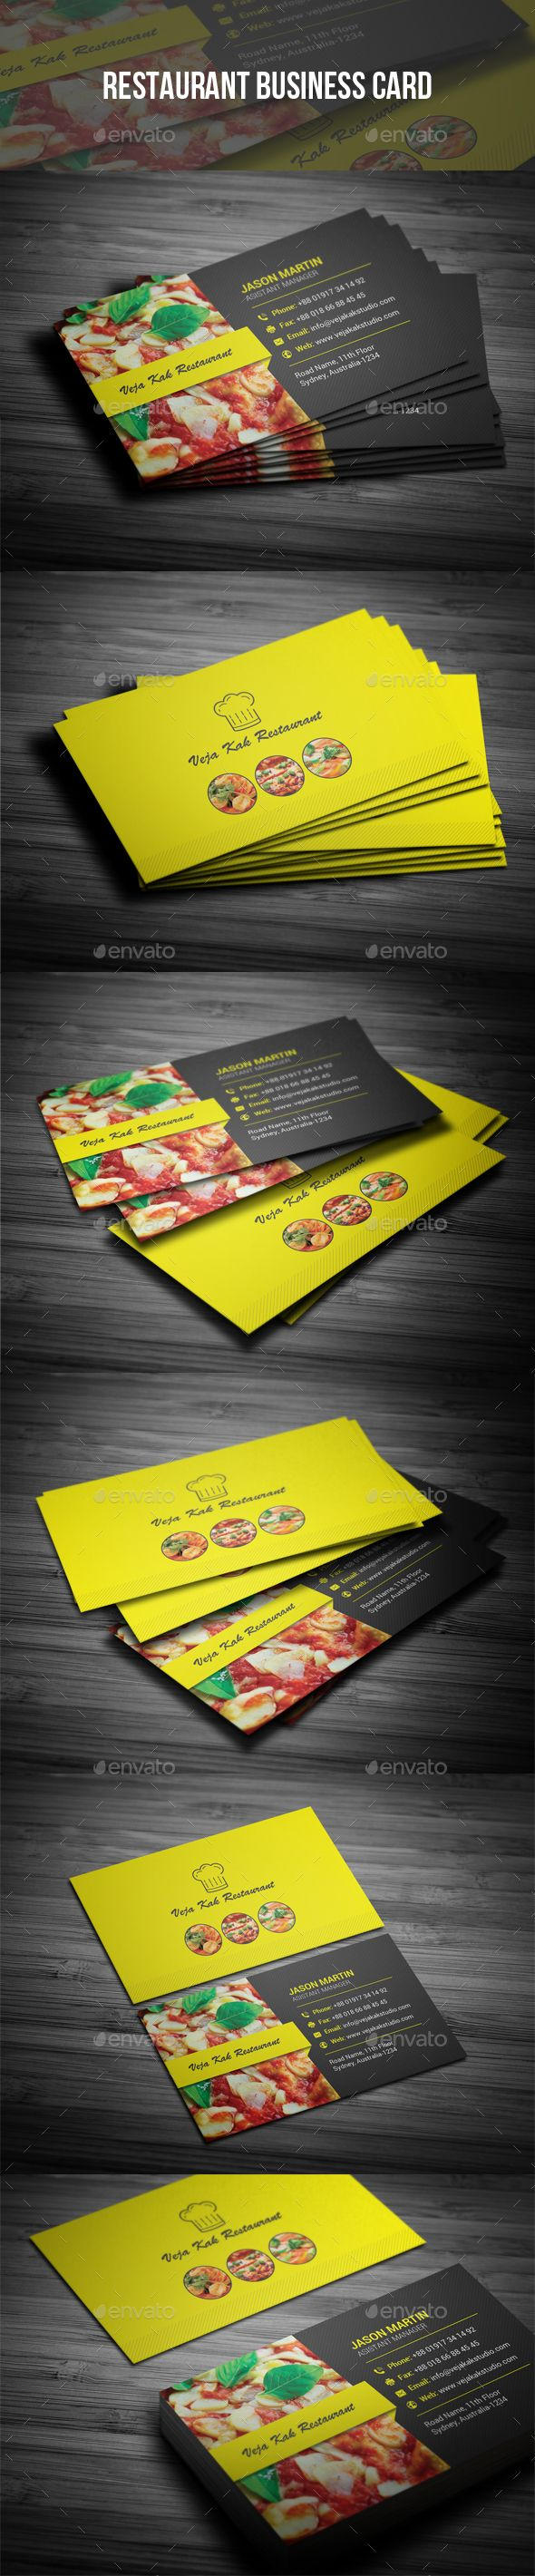 Restaurant Business Card Industry Specific Business